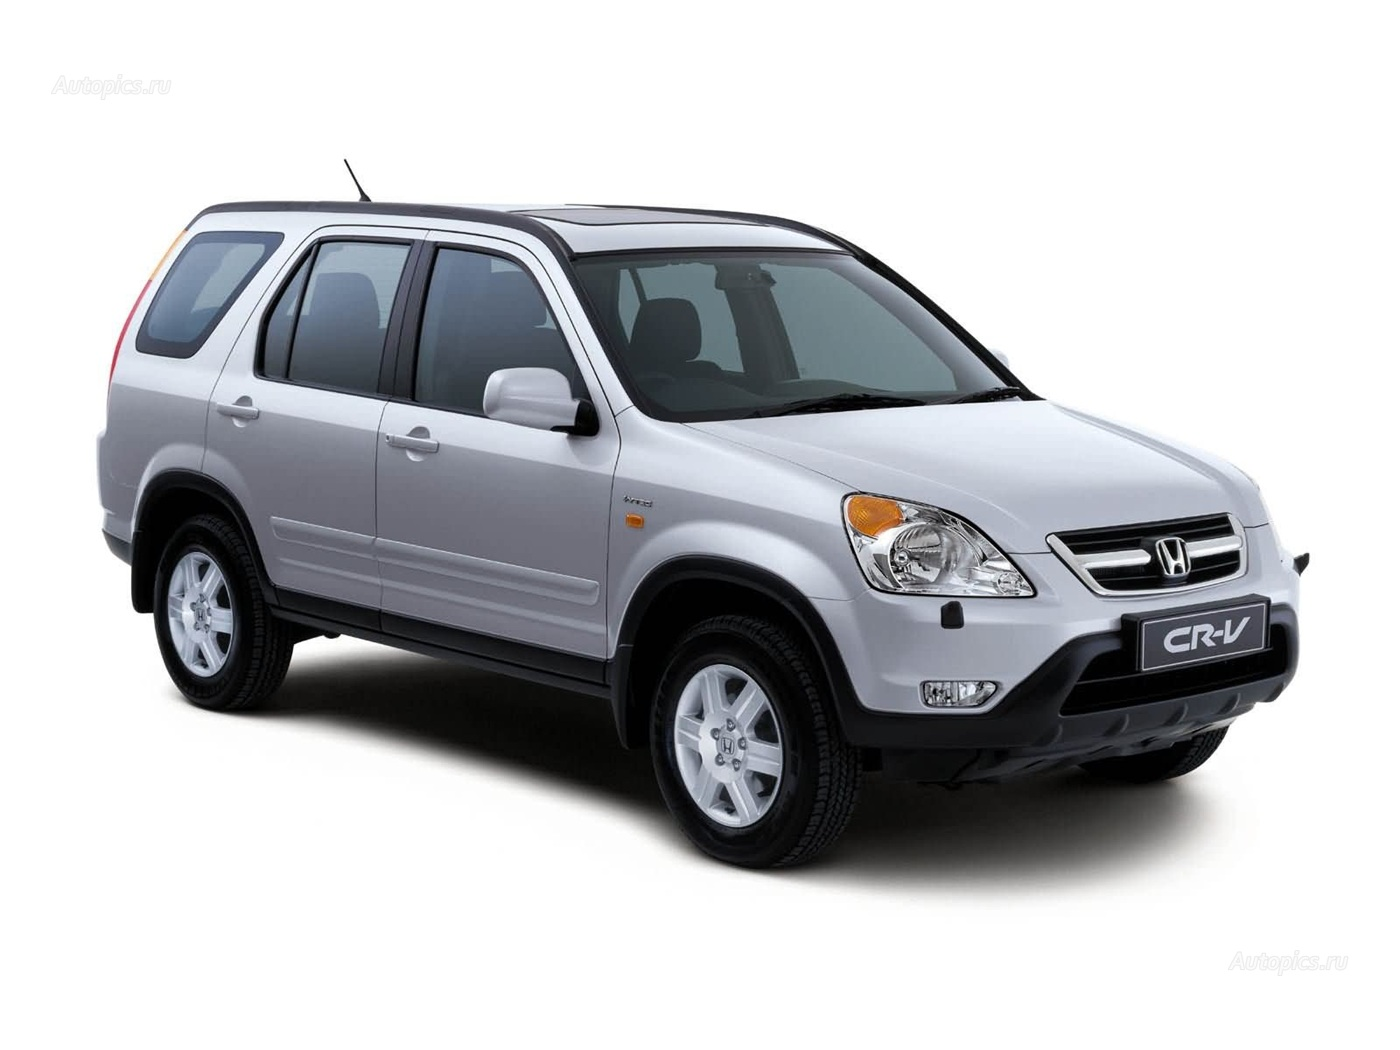 2003 Honda Cr-v ii (rd4-rd5) - pictures, information and ...